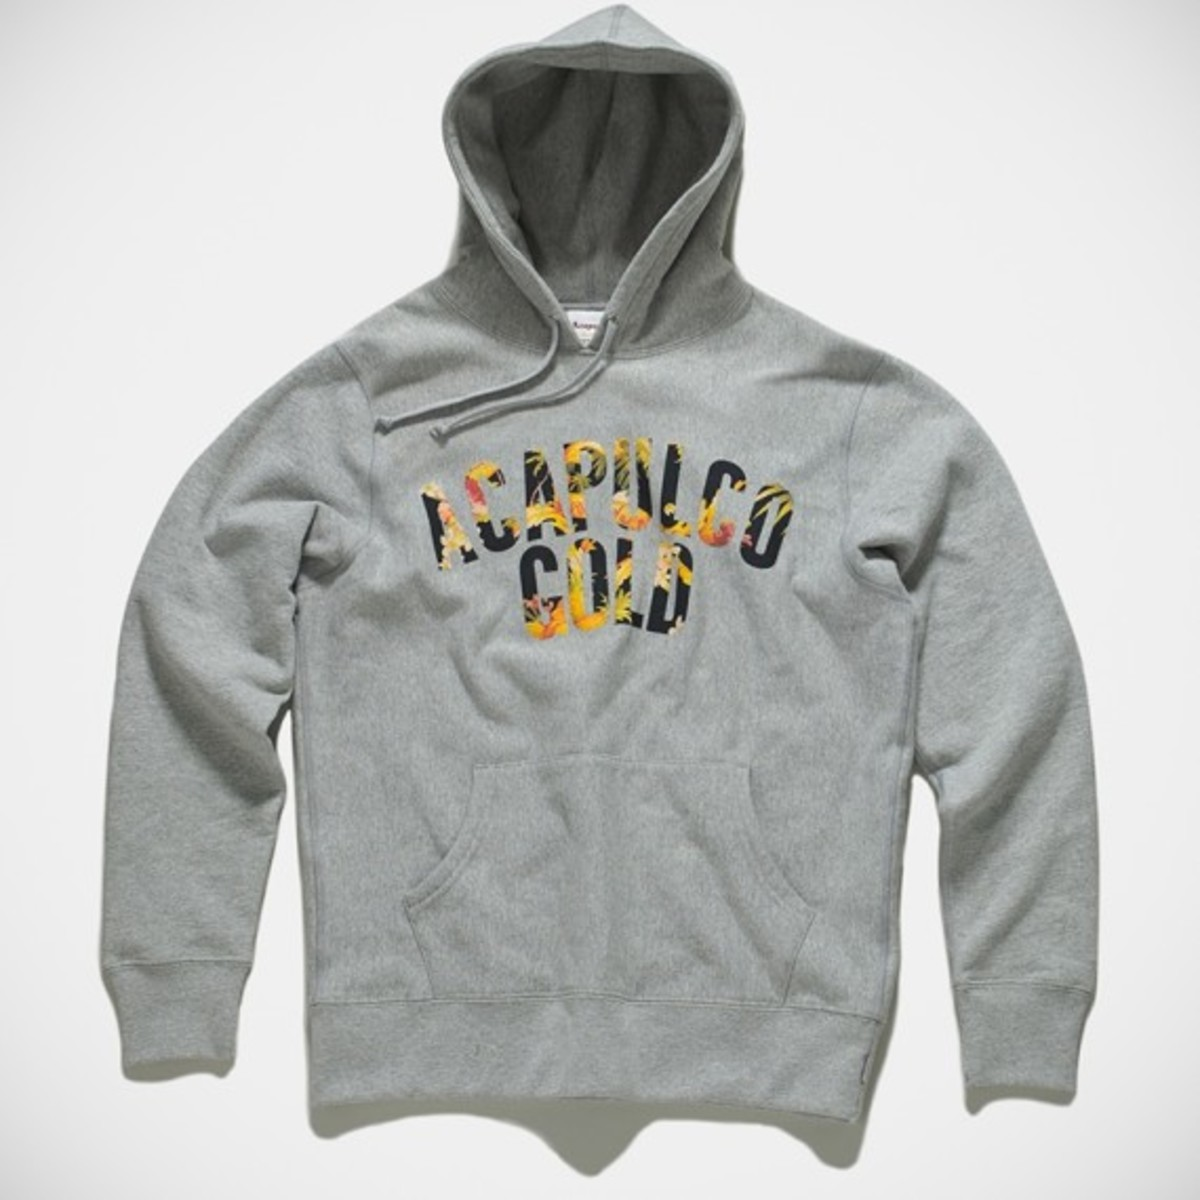 acapulco-gold-spring-2014-collection-delivery-1-04